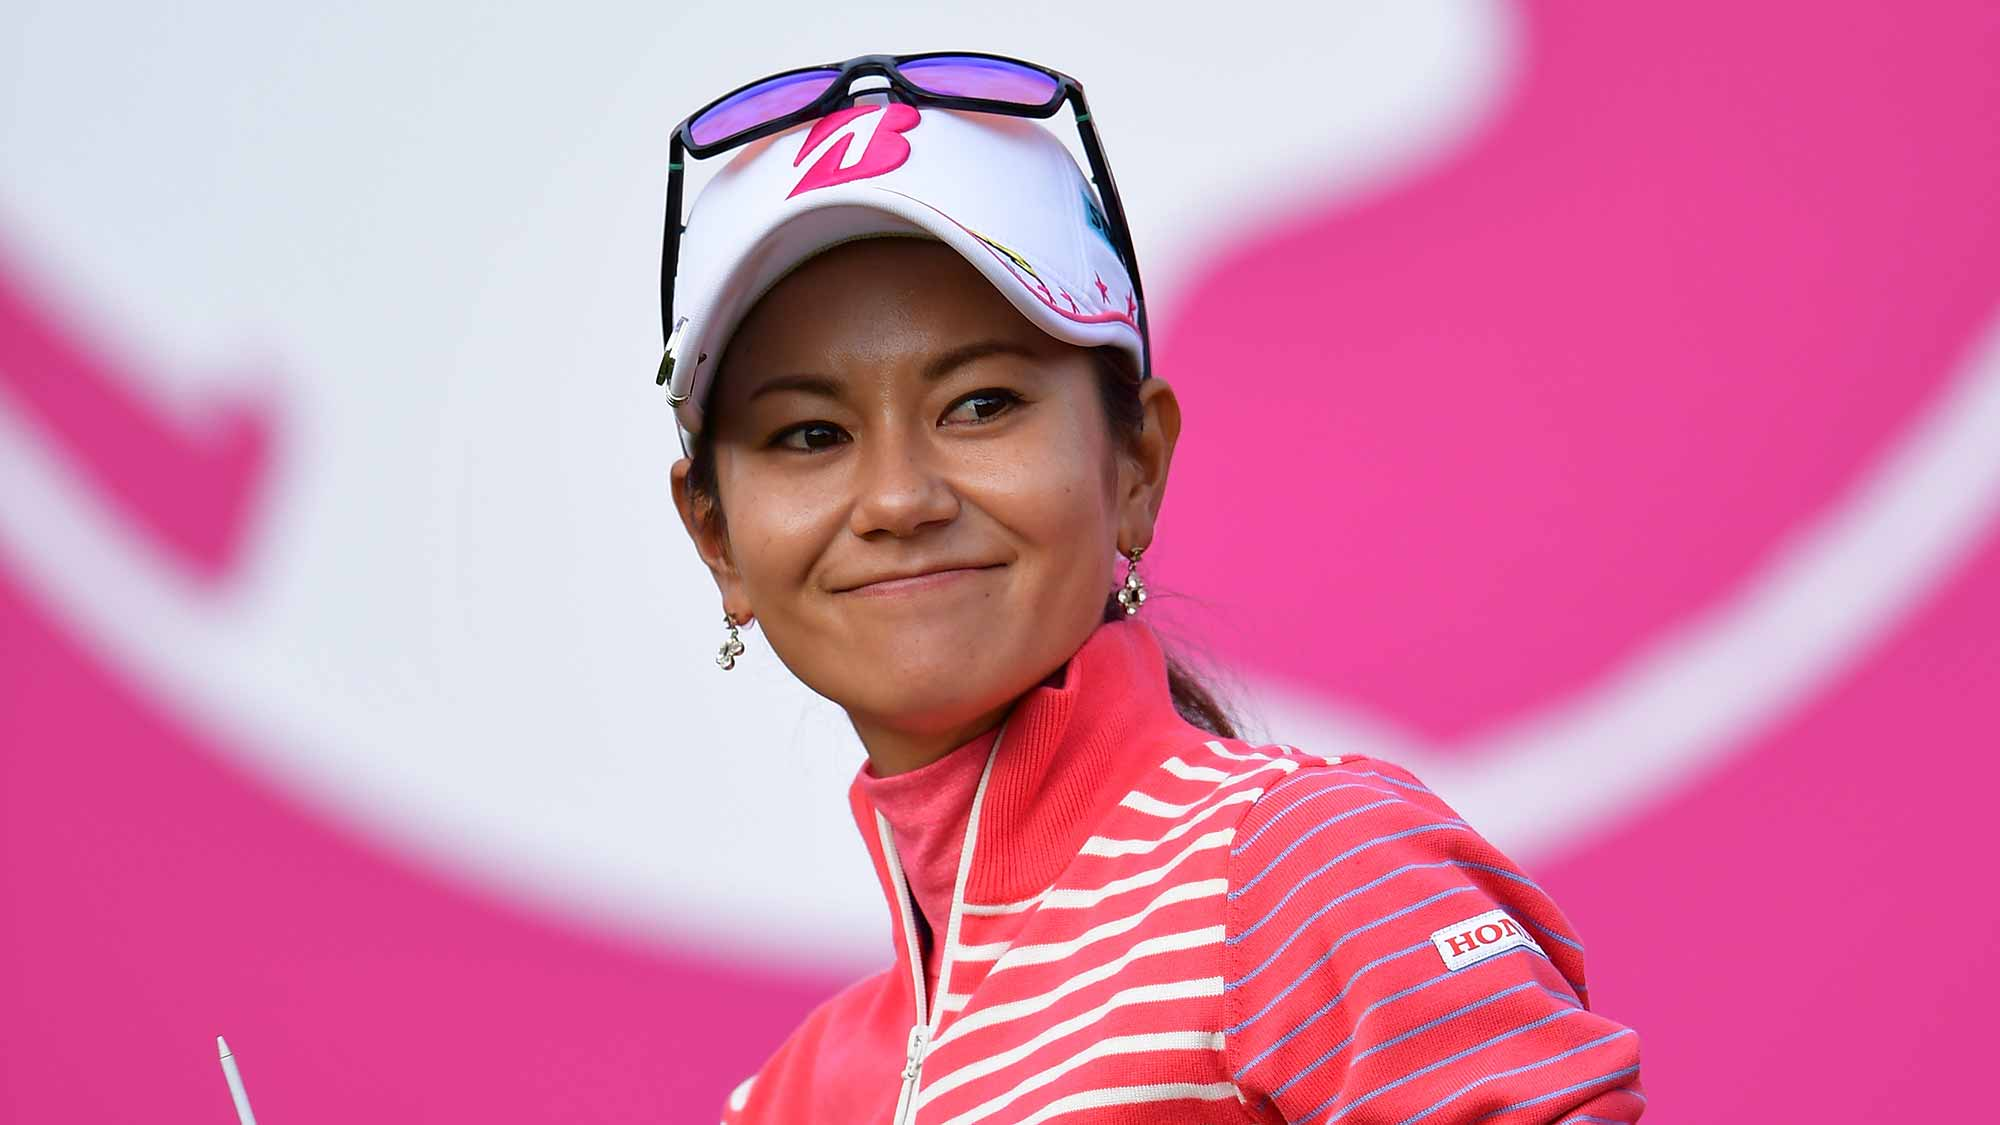 Jutanugarn in pole position for maiden win